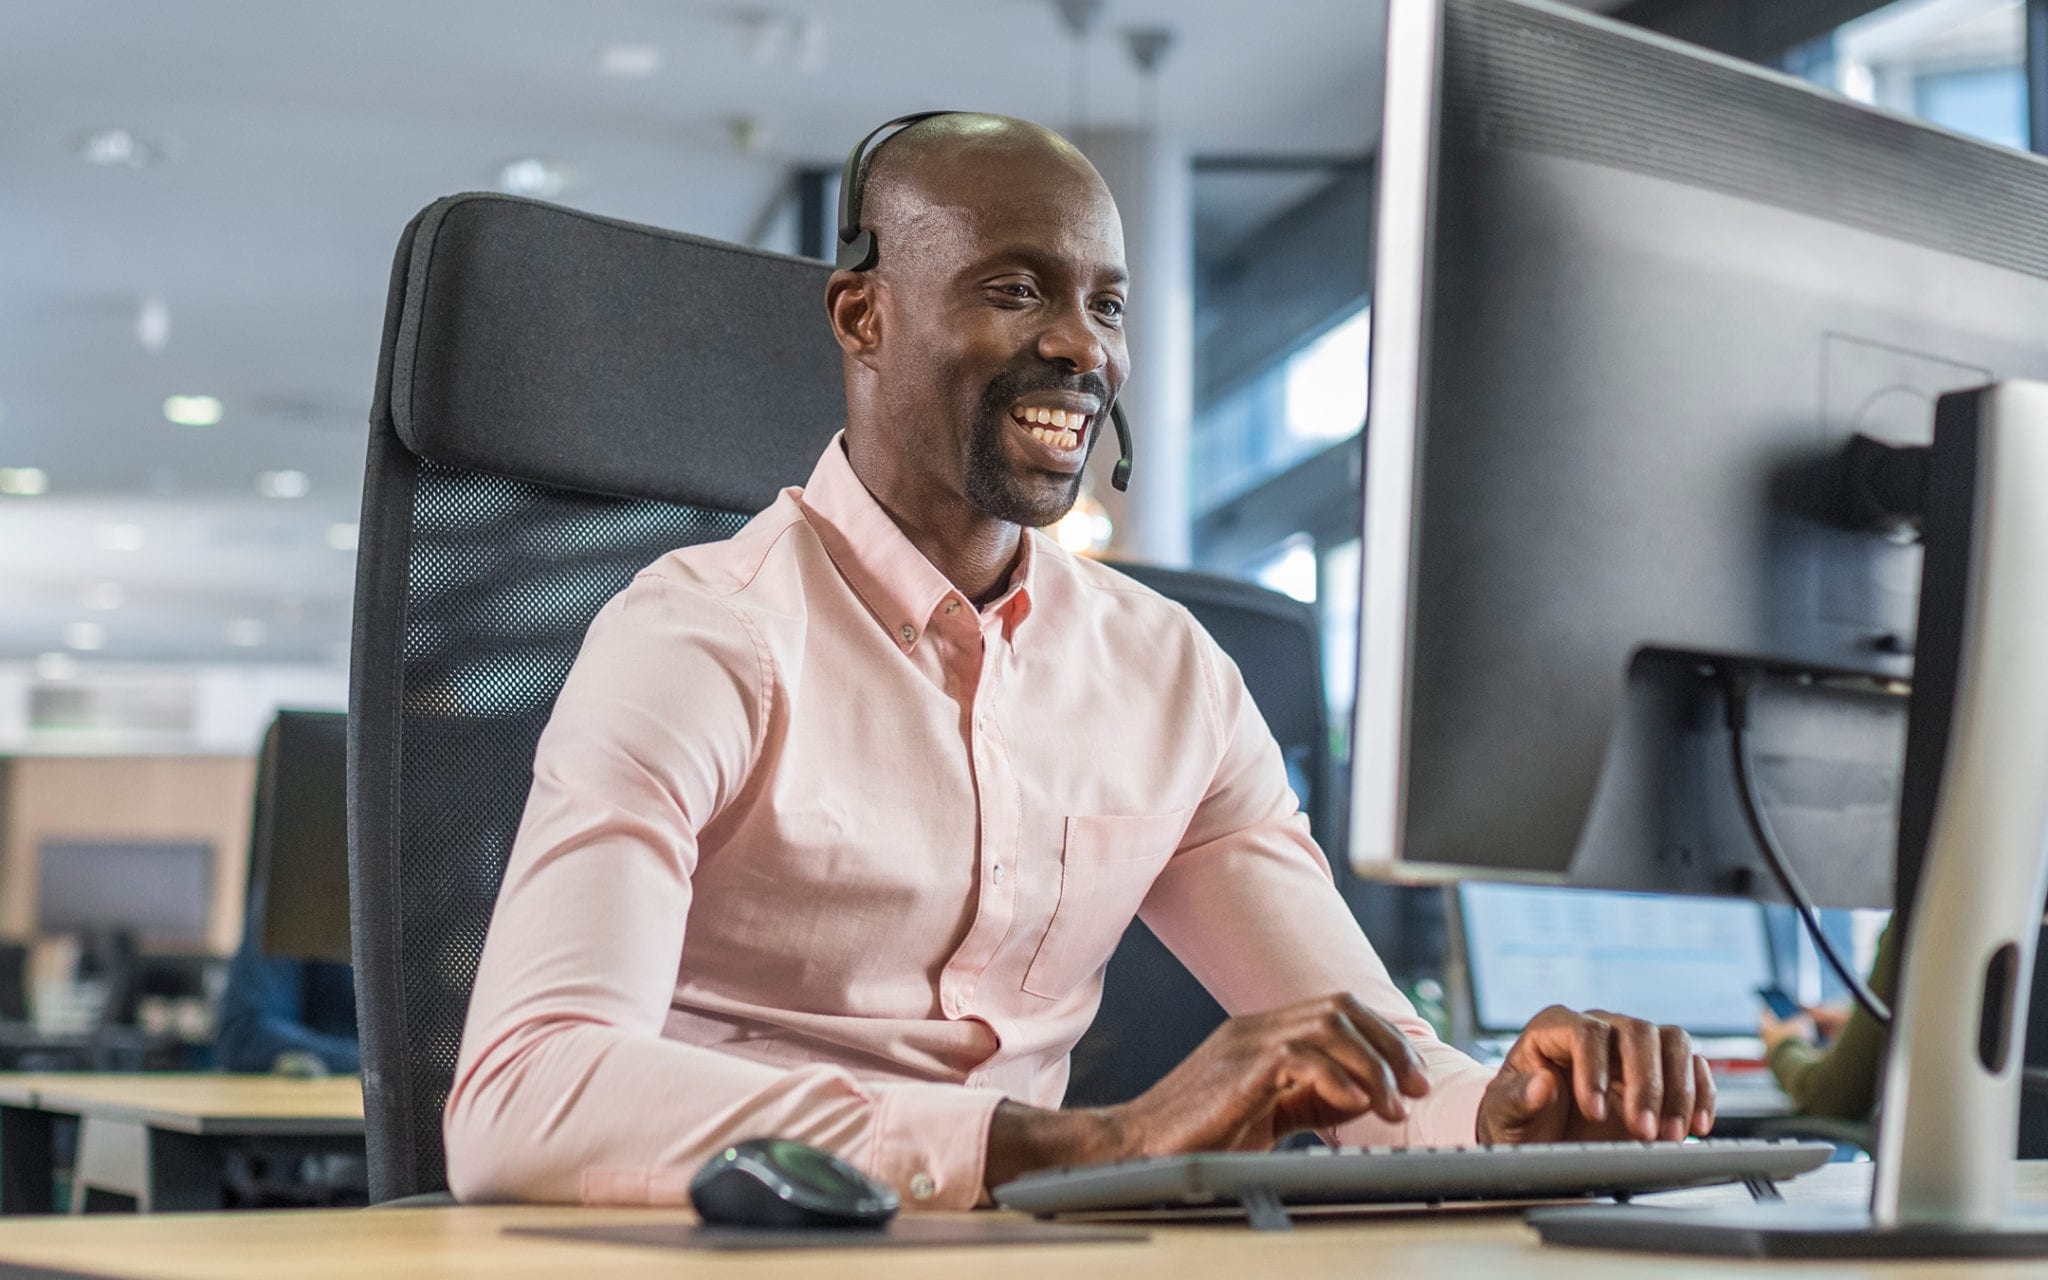 Smiling man working on appointment scheduling at computer and with headset